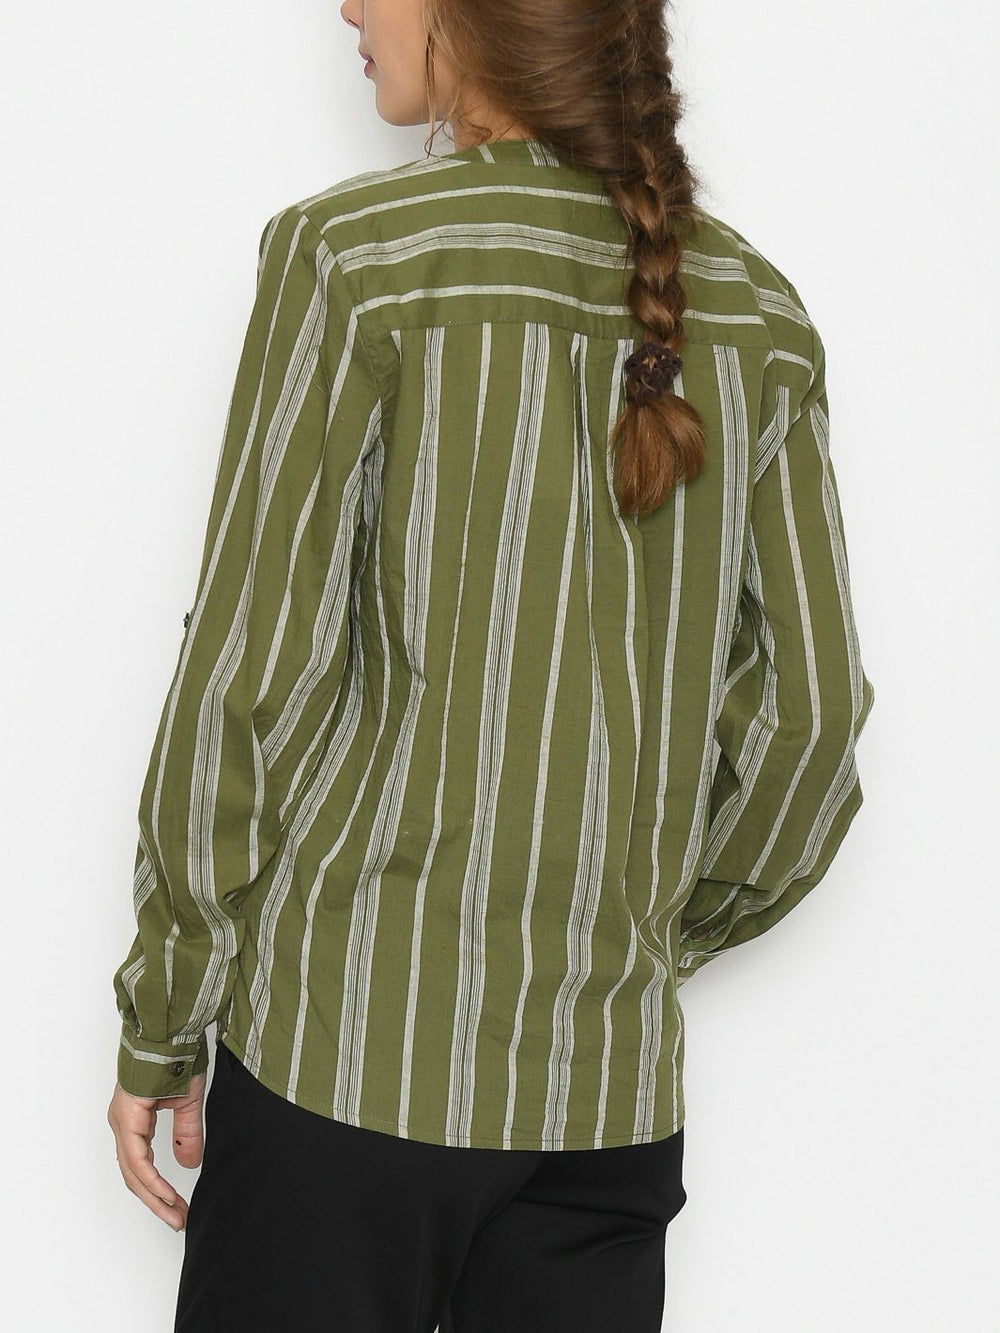 Kaffe KAsandy blouse green/grey yarn dyed stripe - Online-Mode